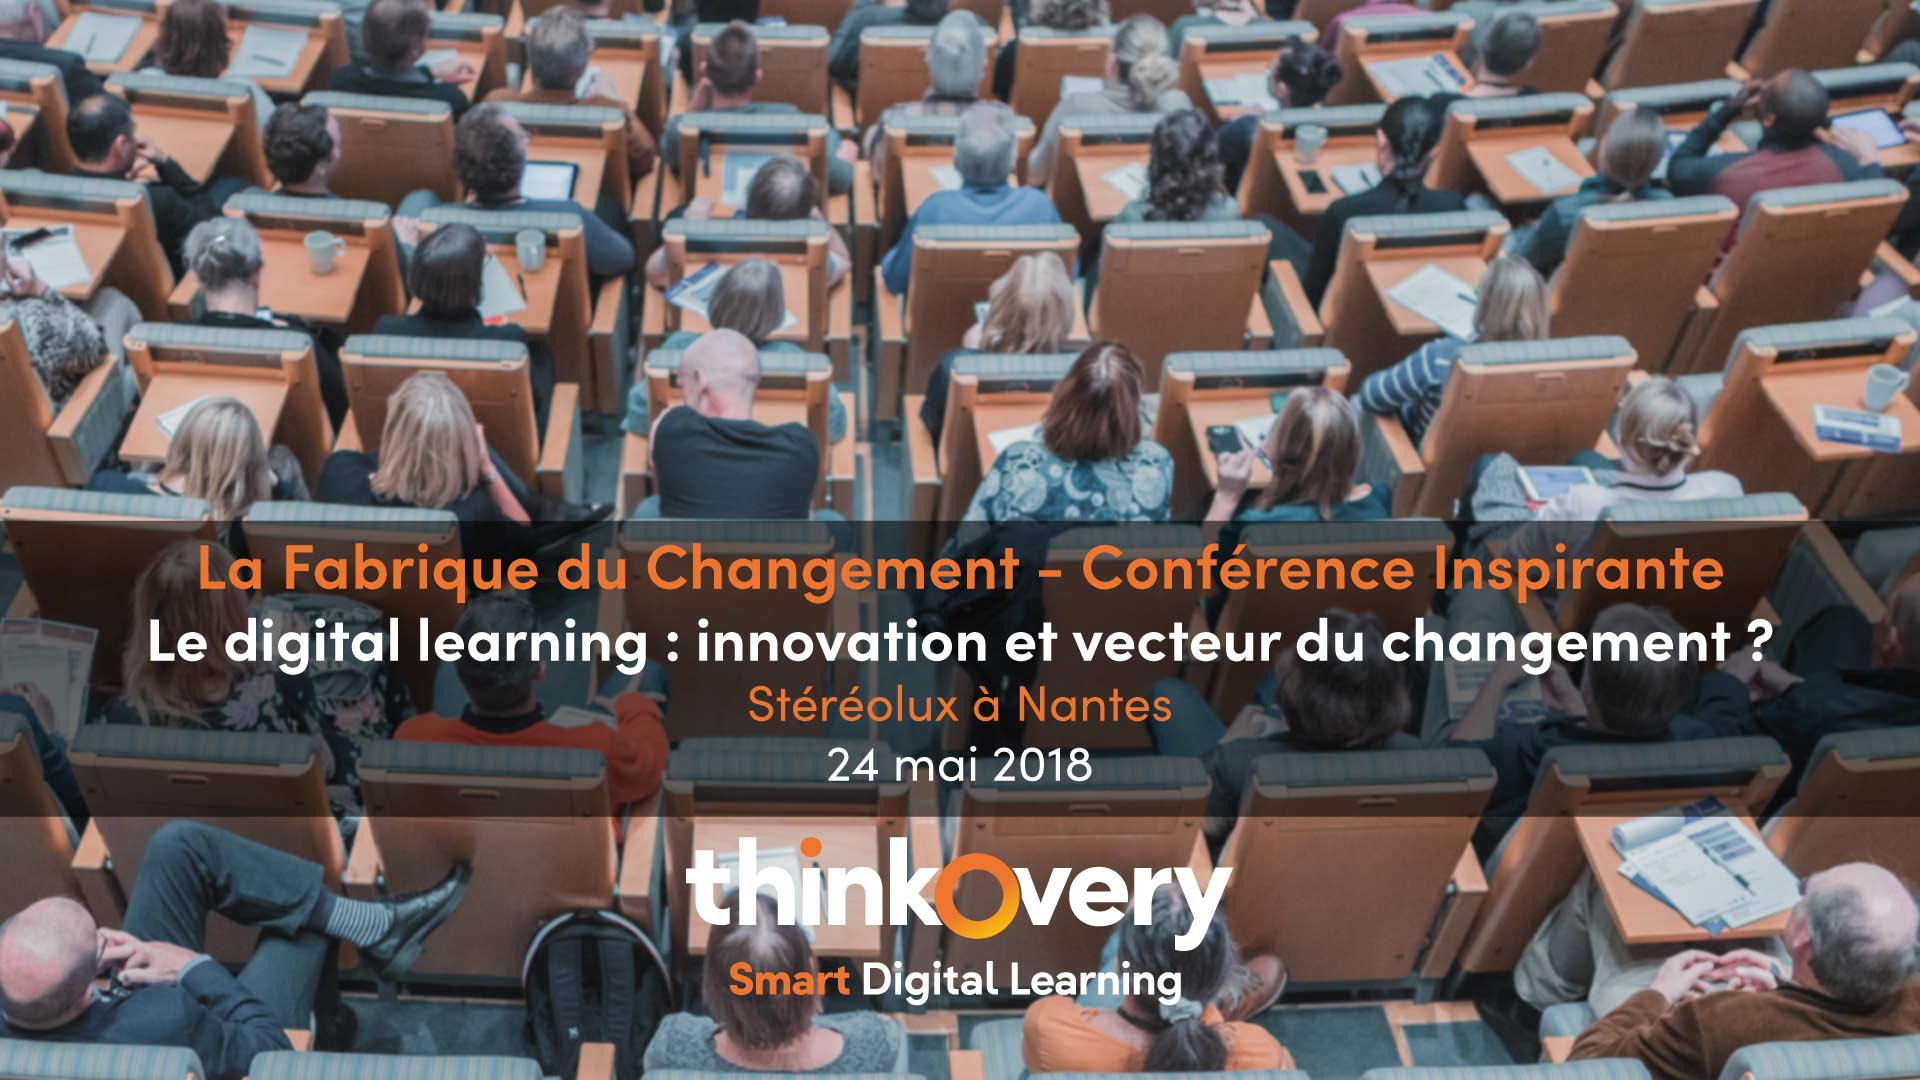 fabrique du changement 2018 thinkovery digital learning